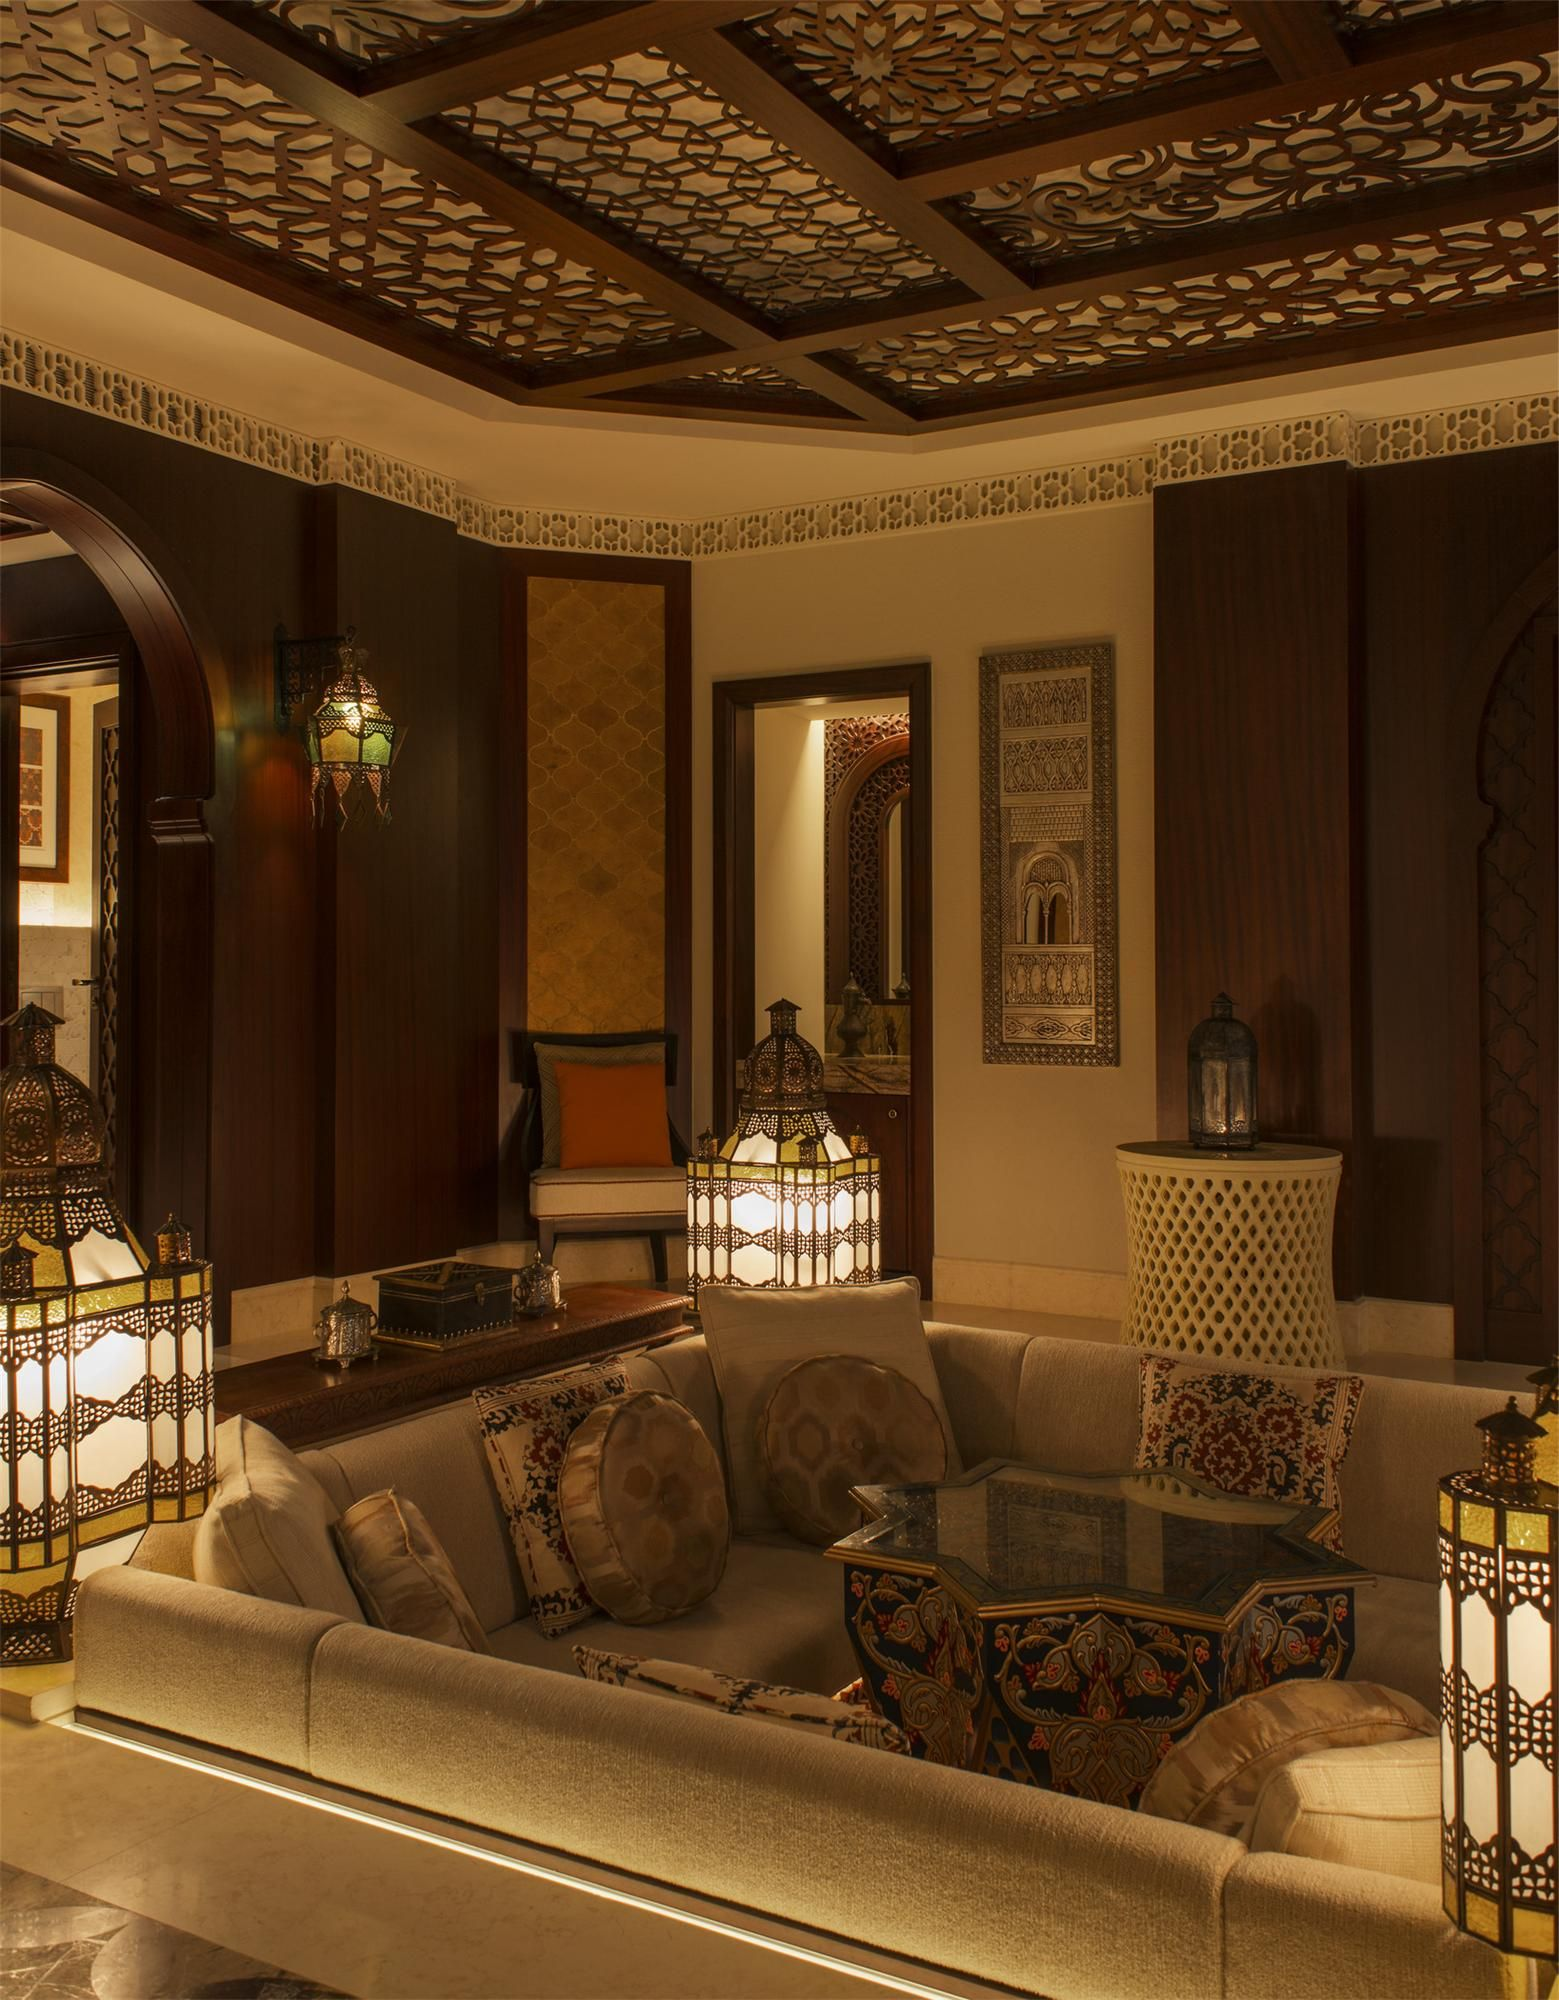 Moroccan Design Ideas 5 Hotel St Regis In Abu Dhabi Interior Design